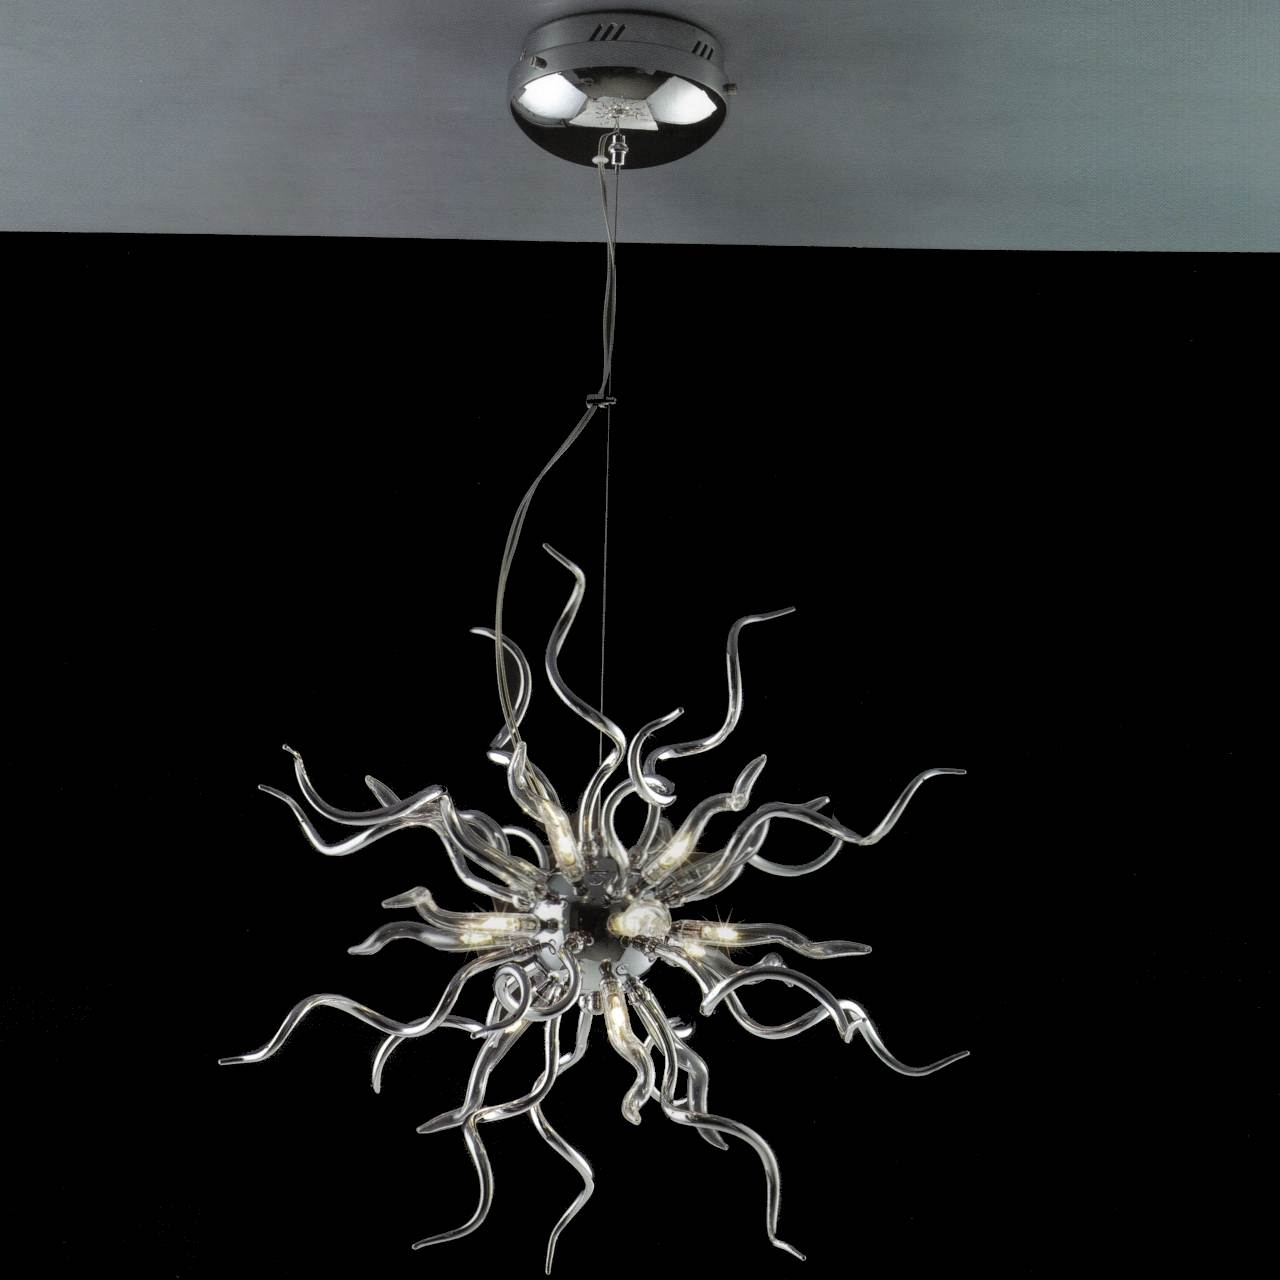 Brizzo Lighting Stores 23 Medusa Modern Round Chandelier Within Chrome And Glass Chandeliers (Image 5 of 25)